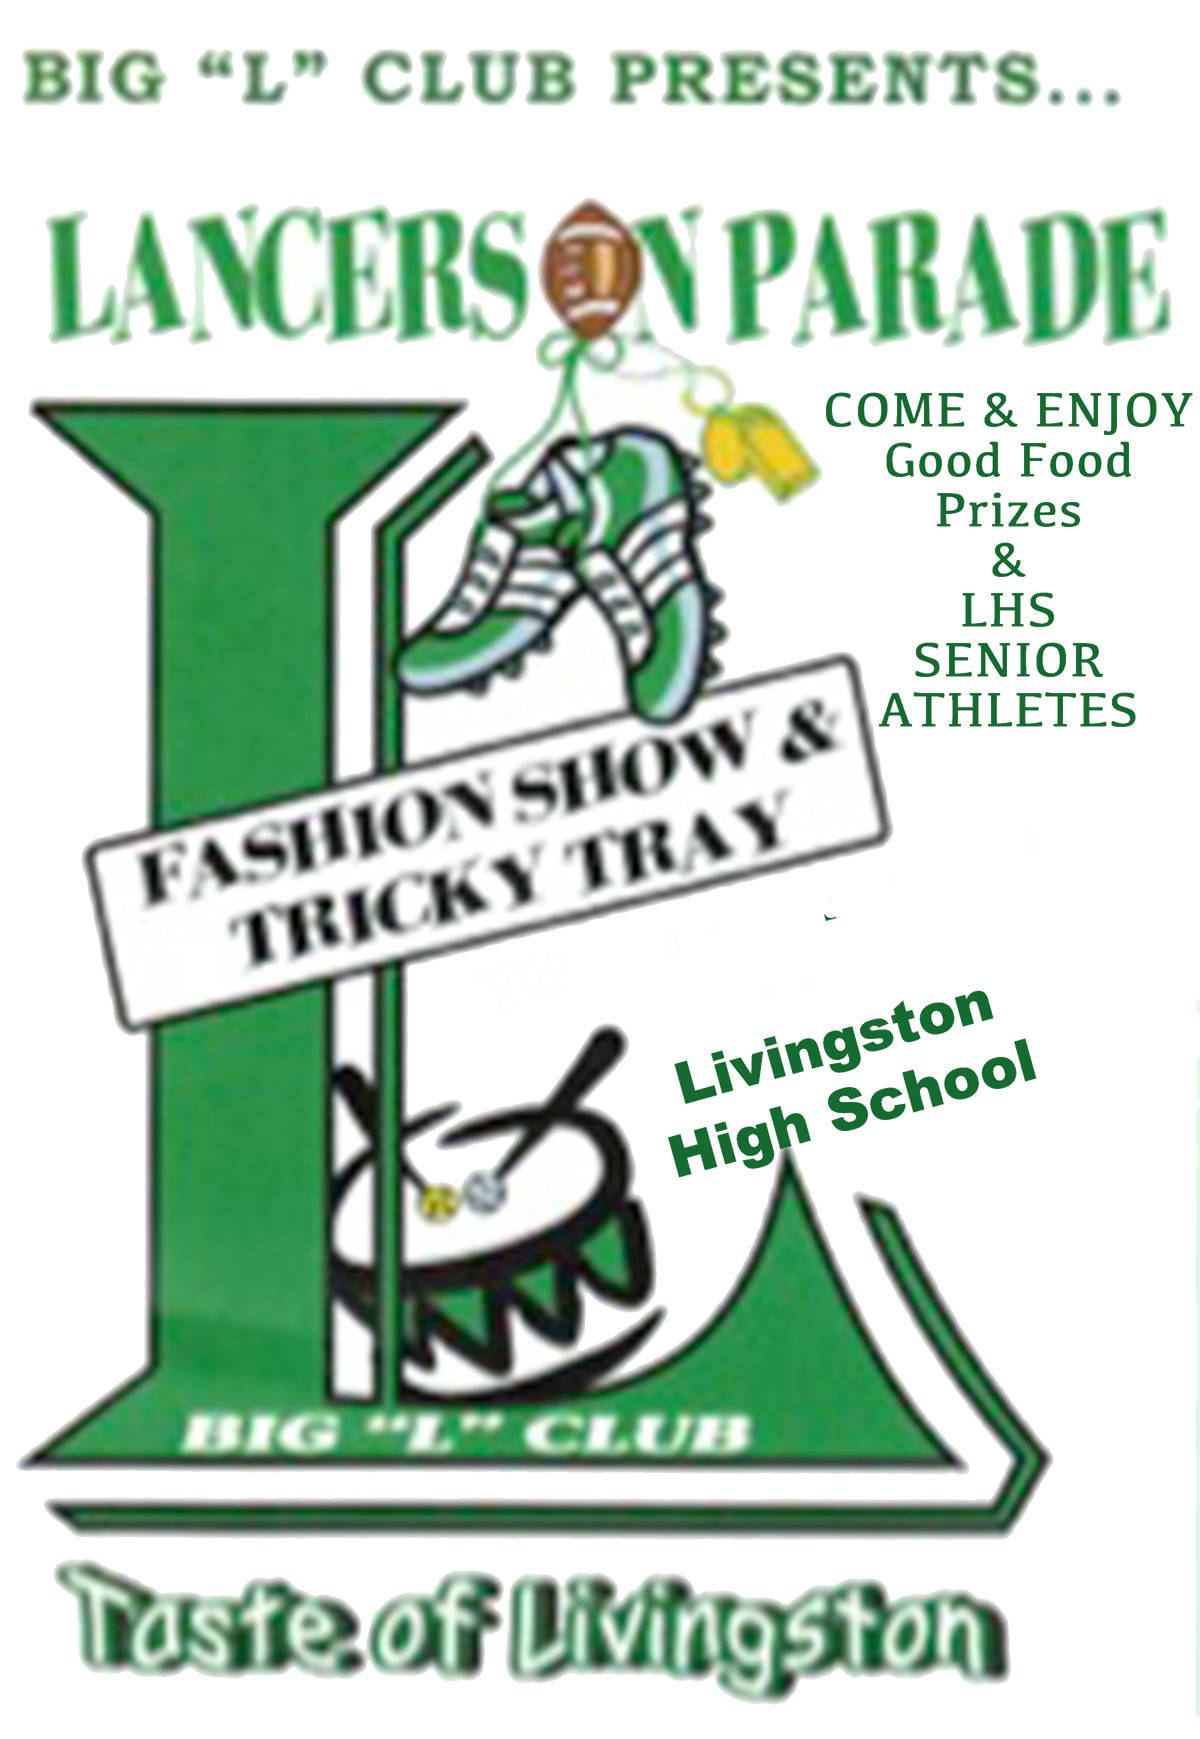 19d524b36972bfed22f7_lancers-on-parade-flyer_2016_revised-1.jpg